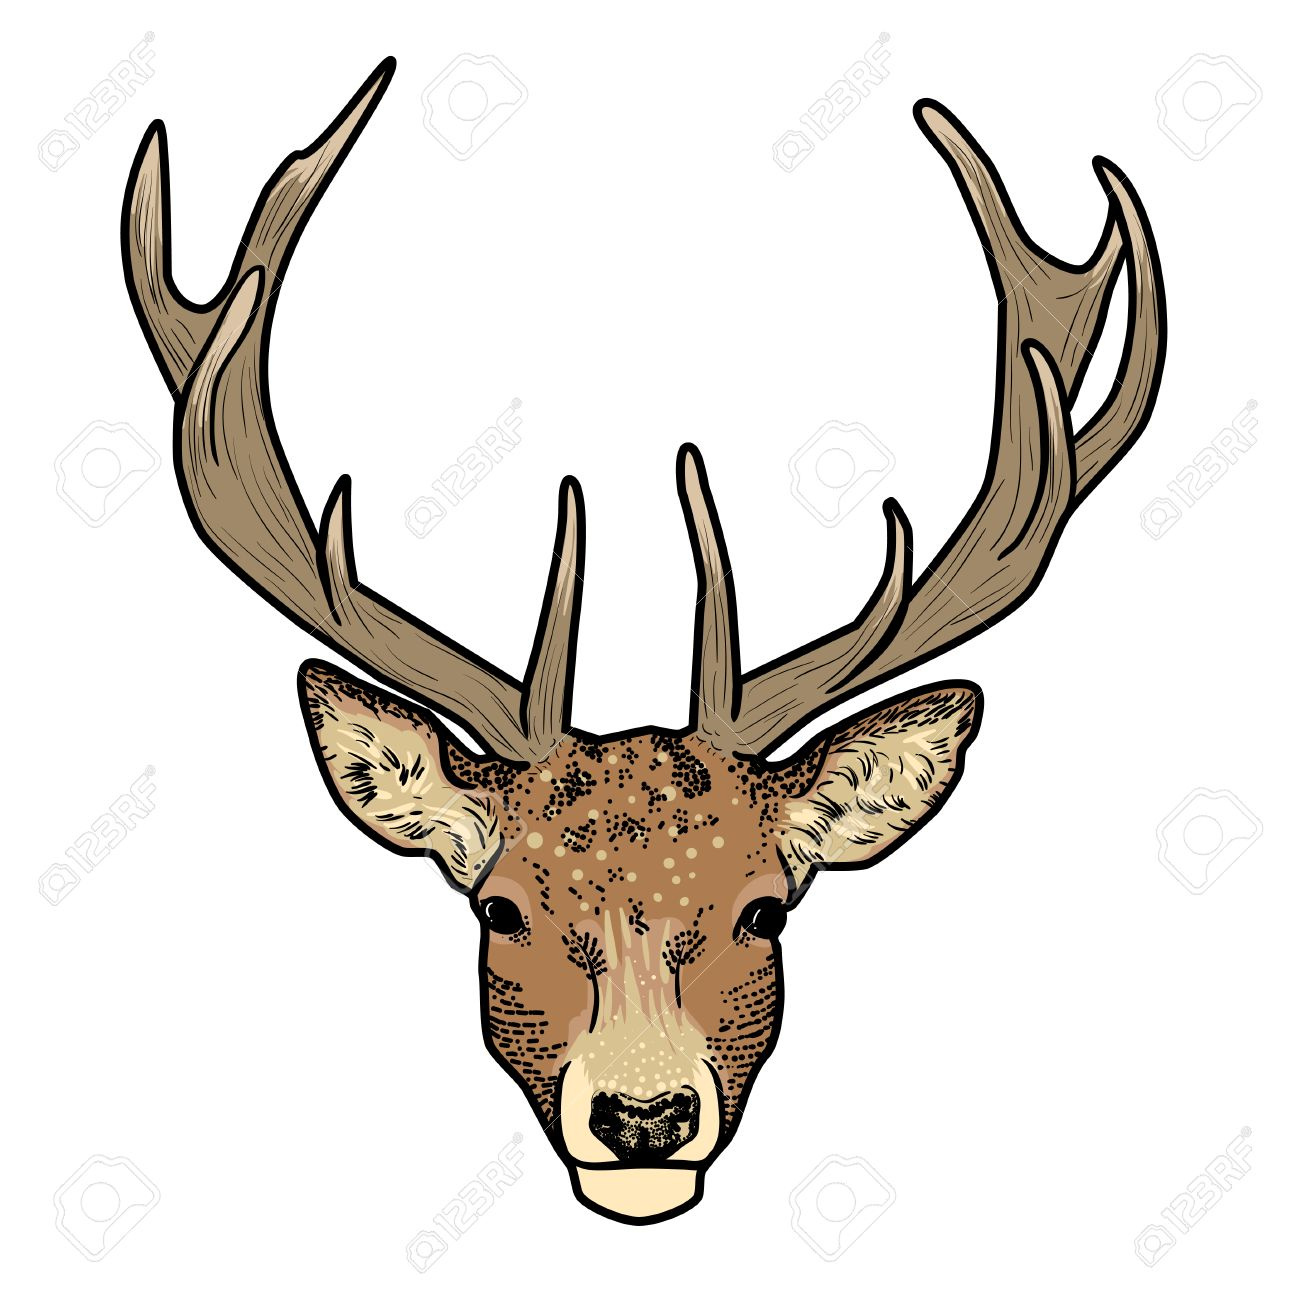 Image result for CARTOON DEER WITH ANTLERS